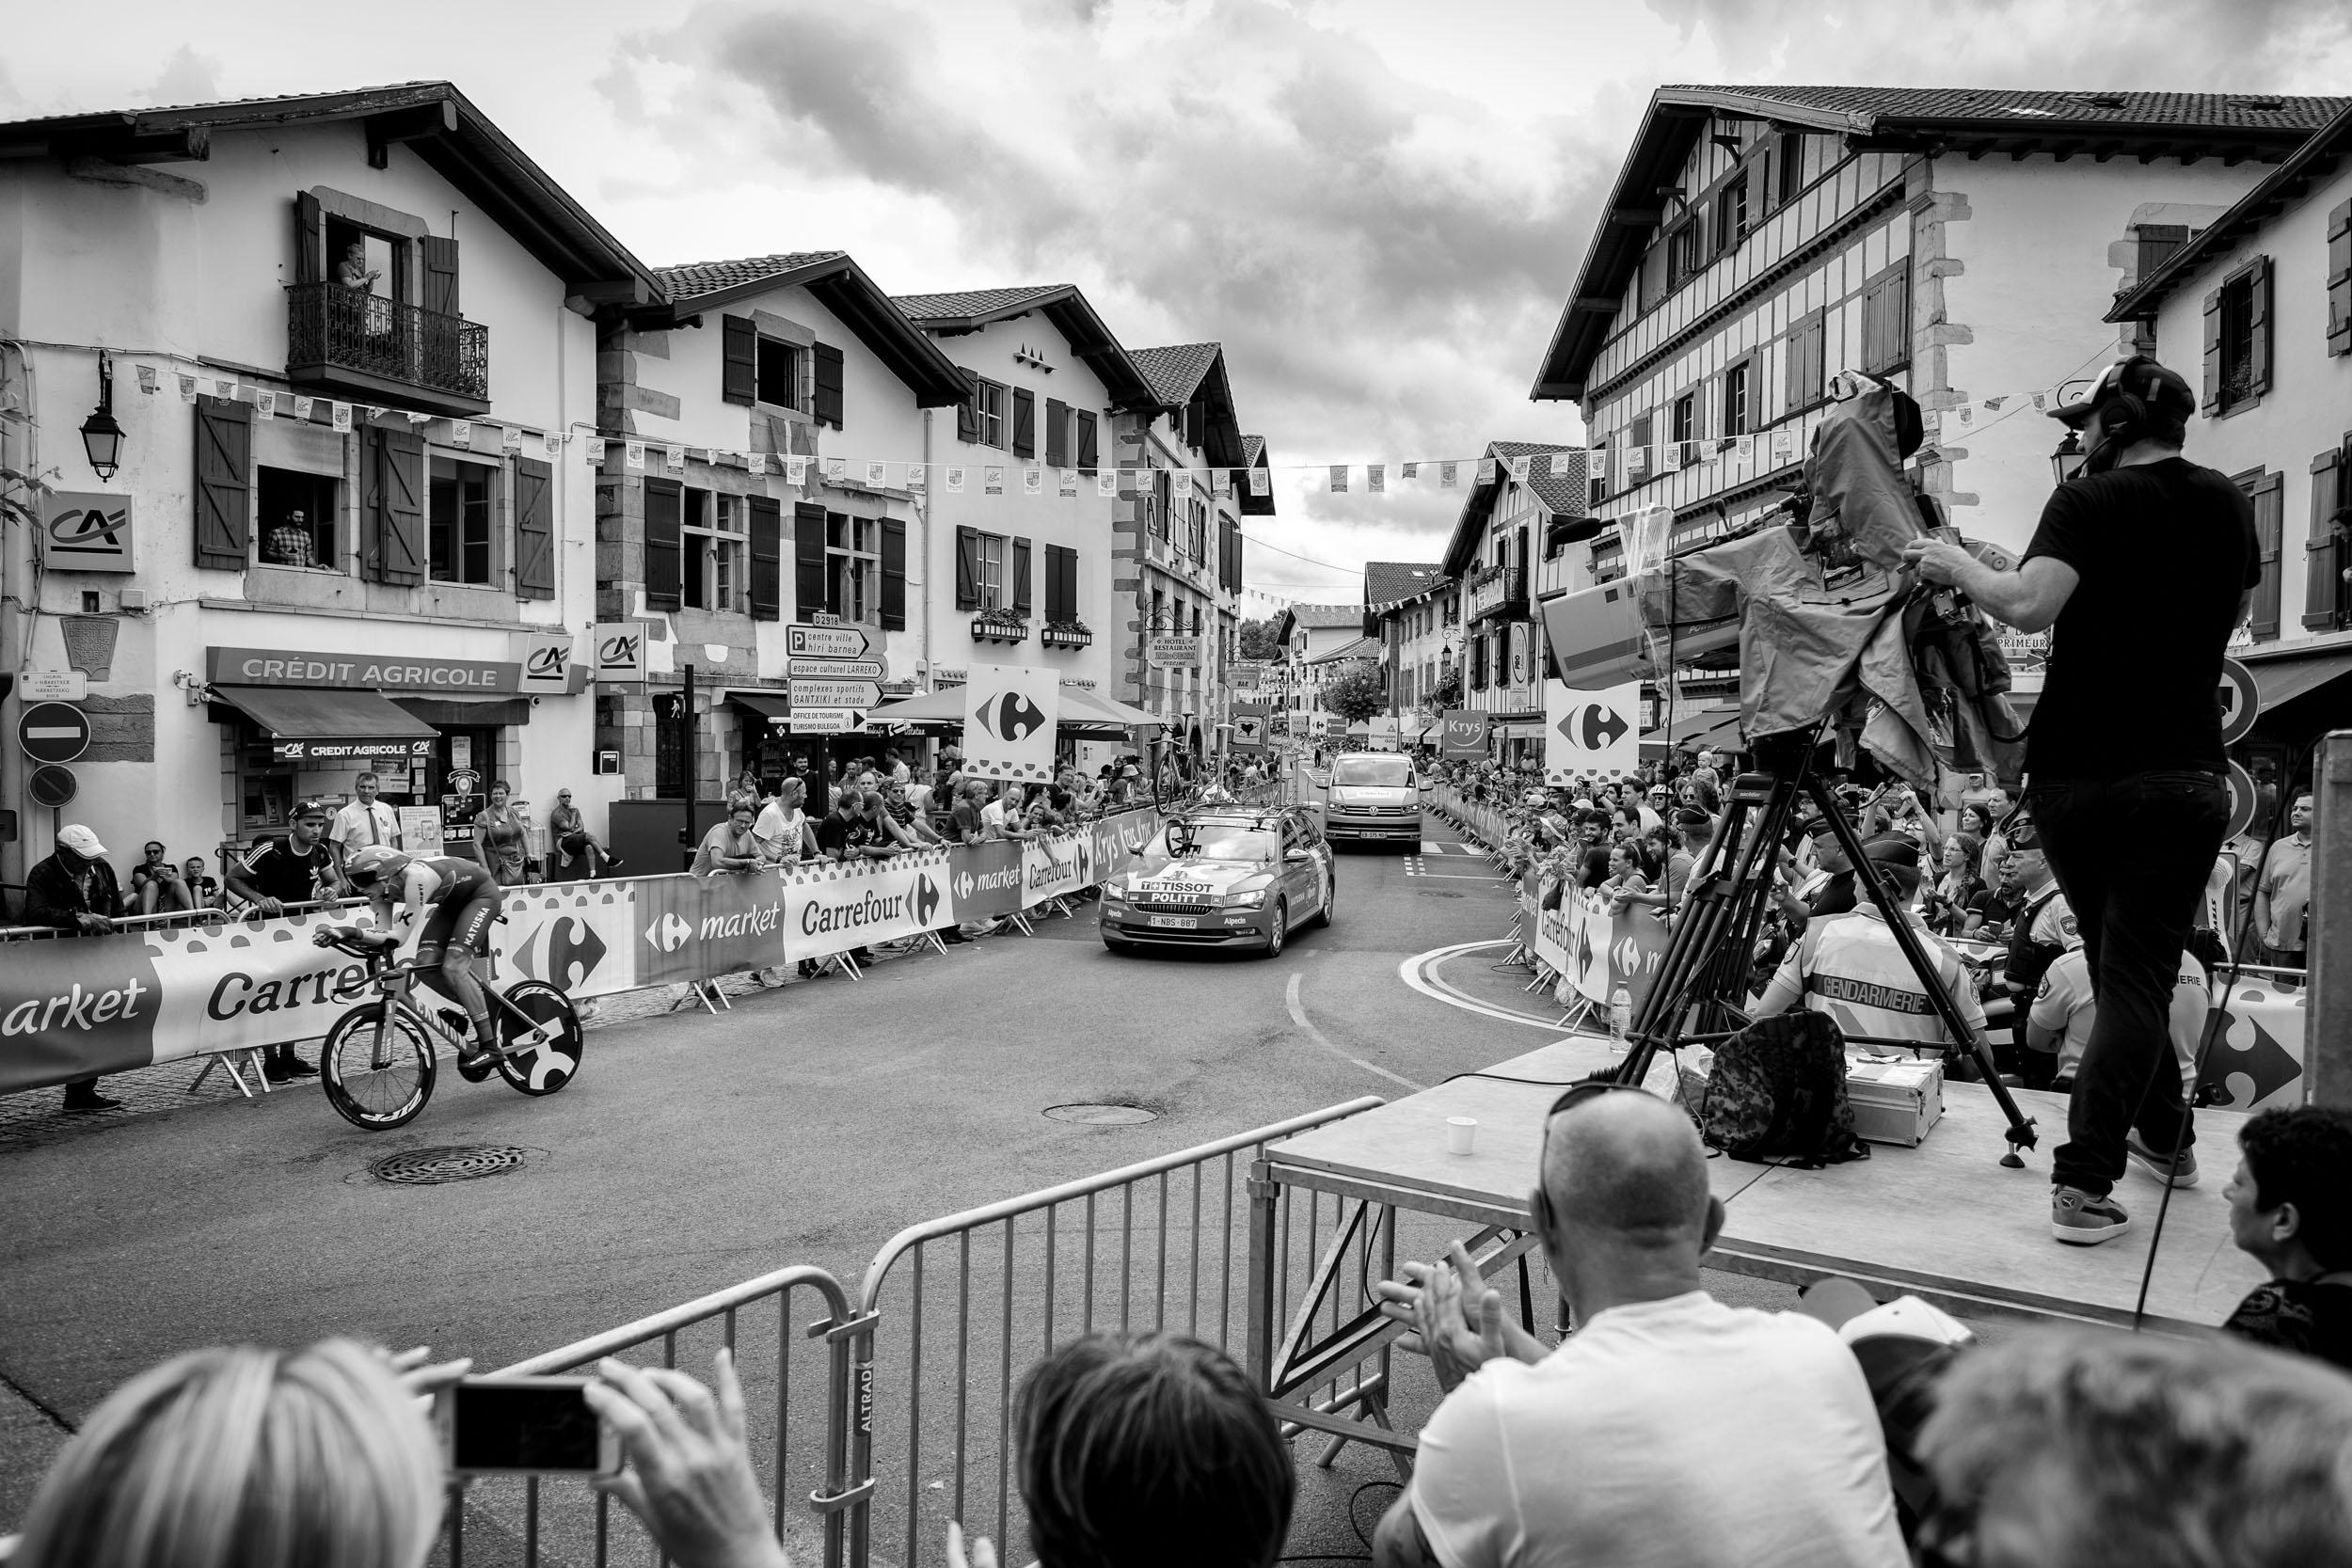 Tour de France in Saint-Pée-sur-Nivelle